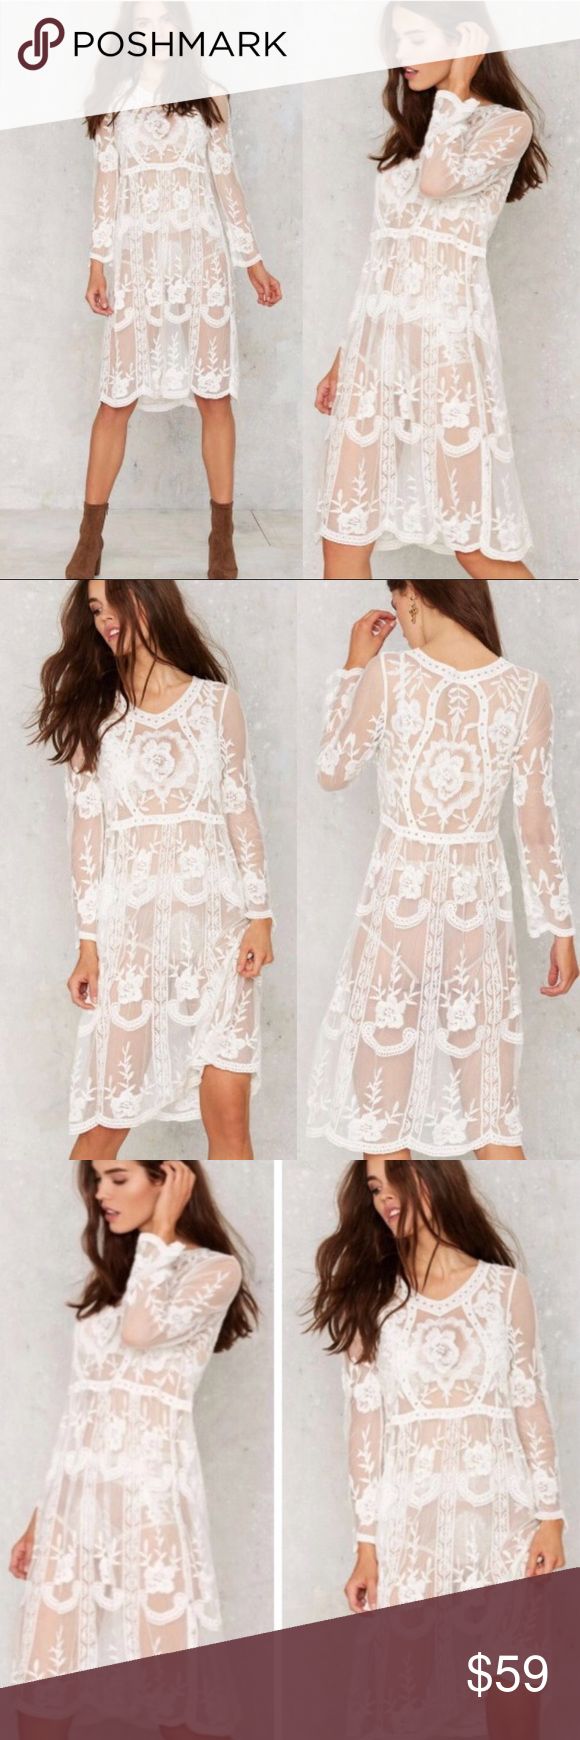 Evelyn white lace dresscover up white lace dresses lace design